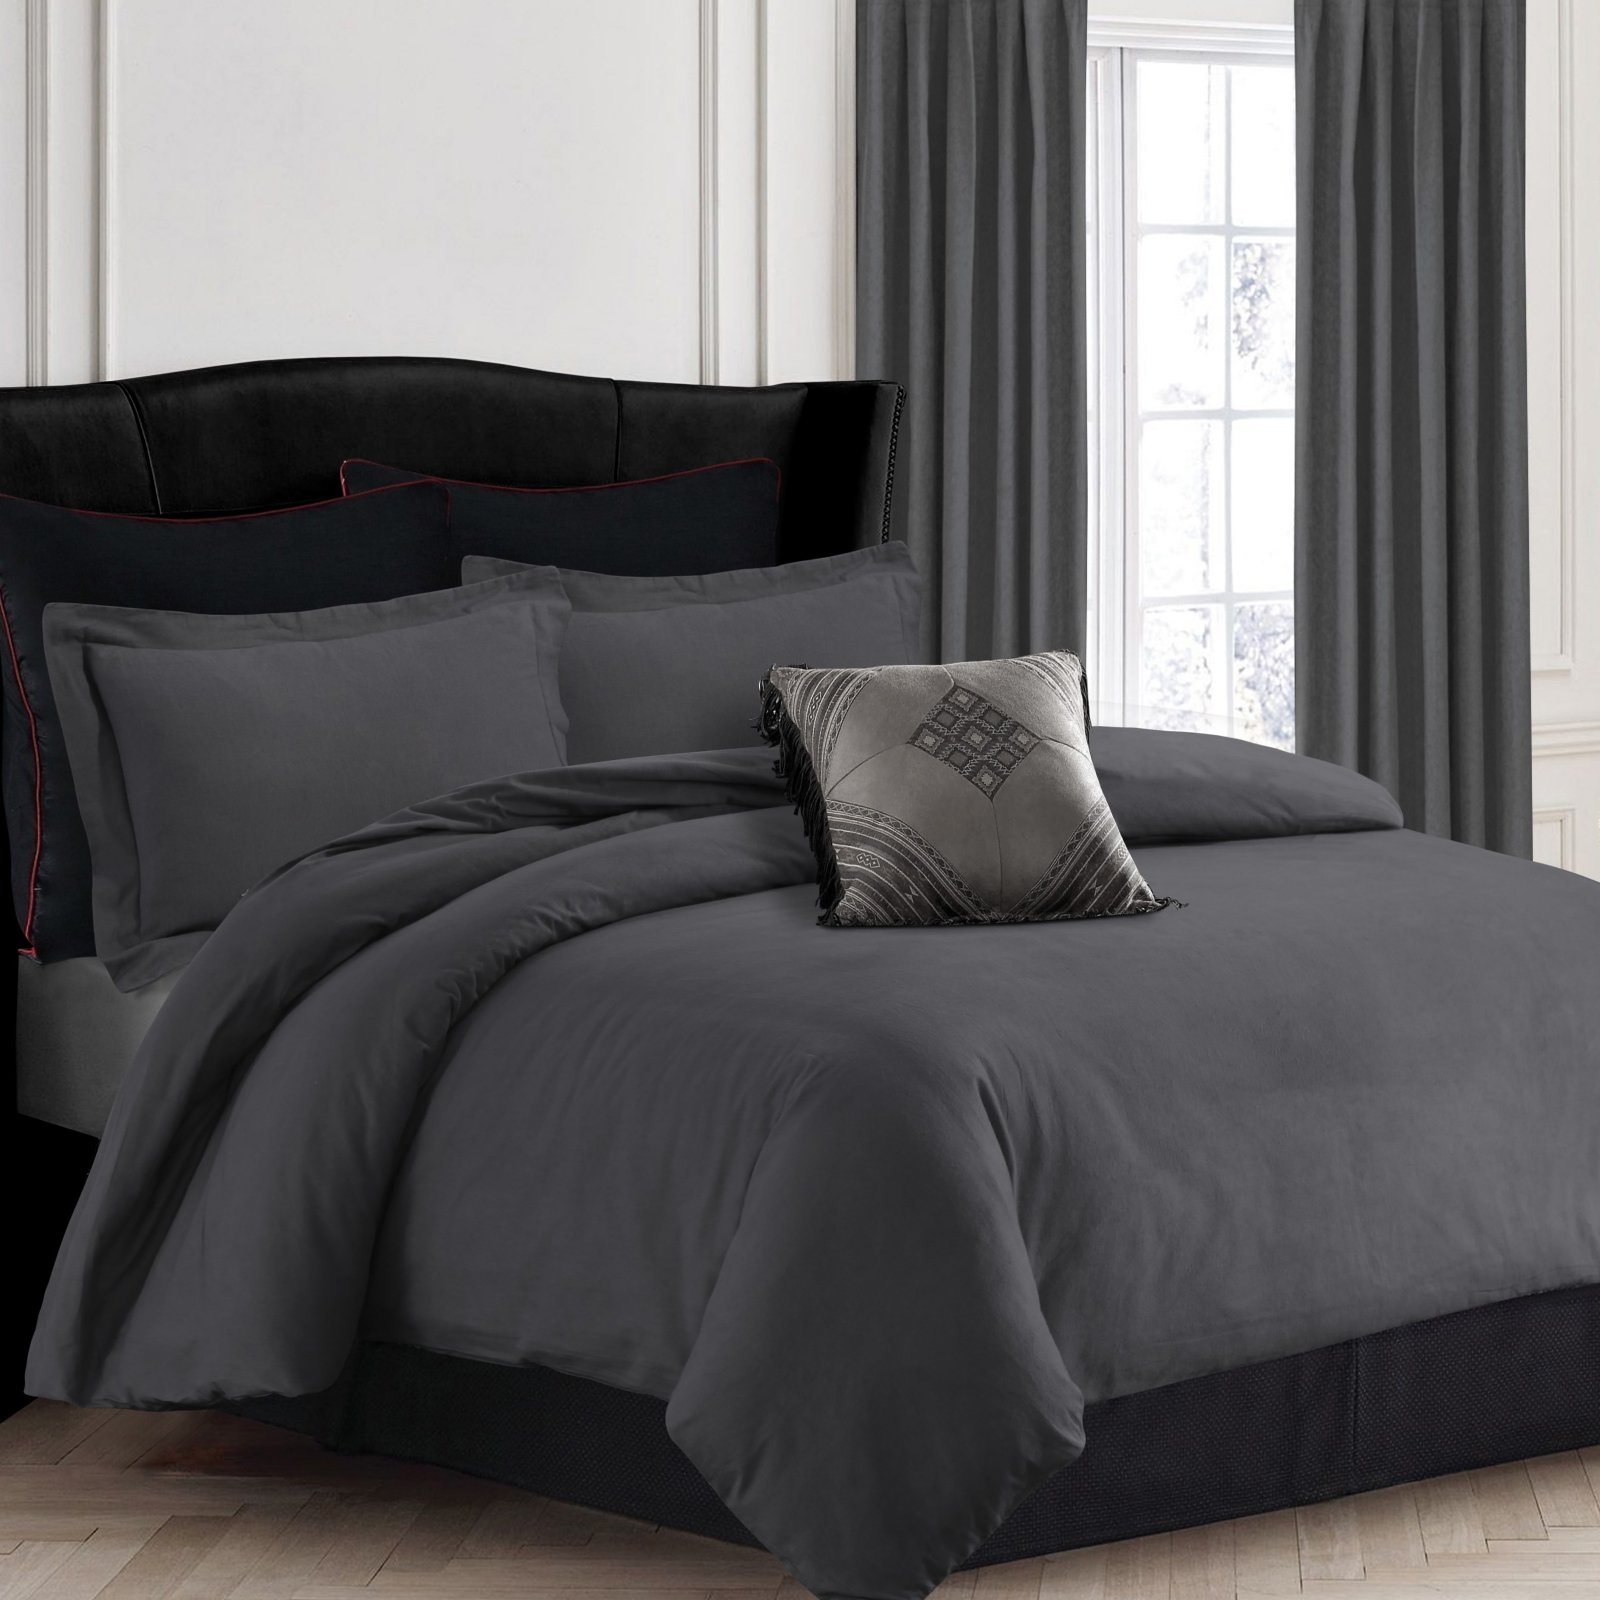 200-GSM Solid Flannel 3 Piece Duvet Cover Set by Tribeca Living